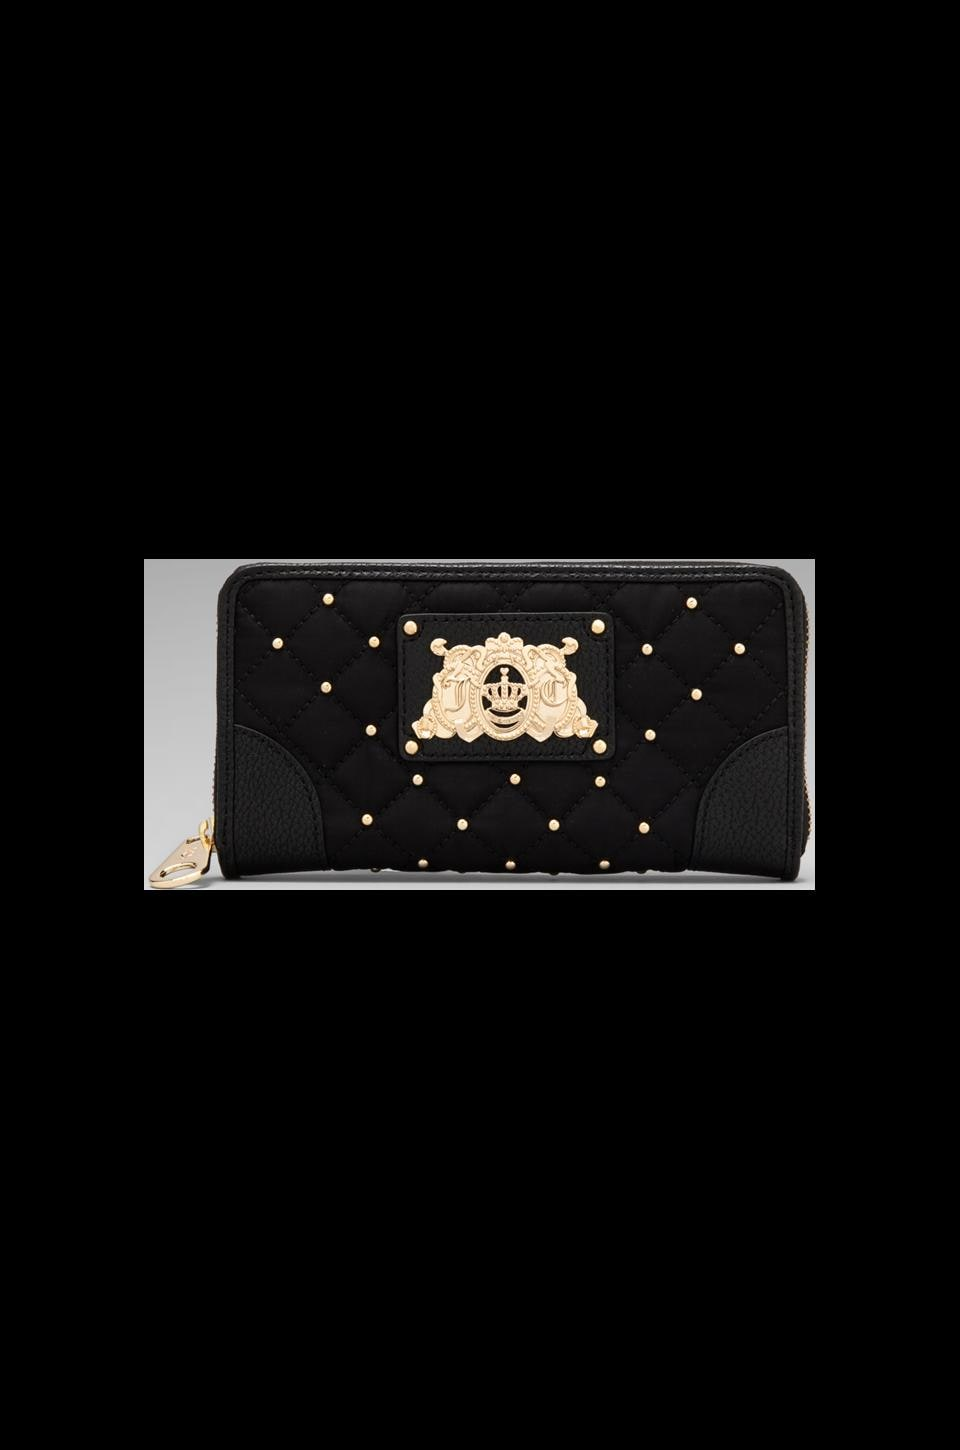 Juicy Couture Ongoing Nylon Quilted/Studded Zip Wallet in Black